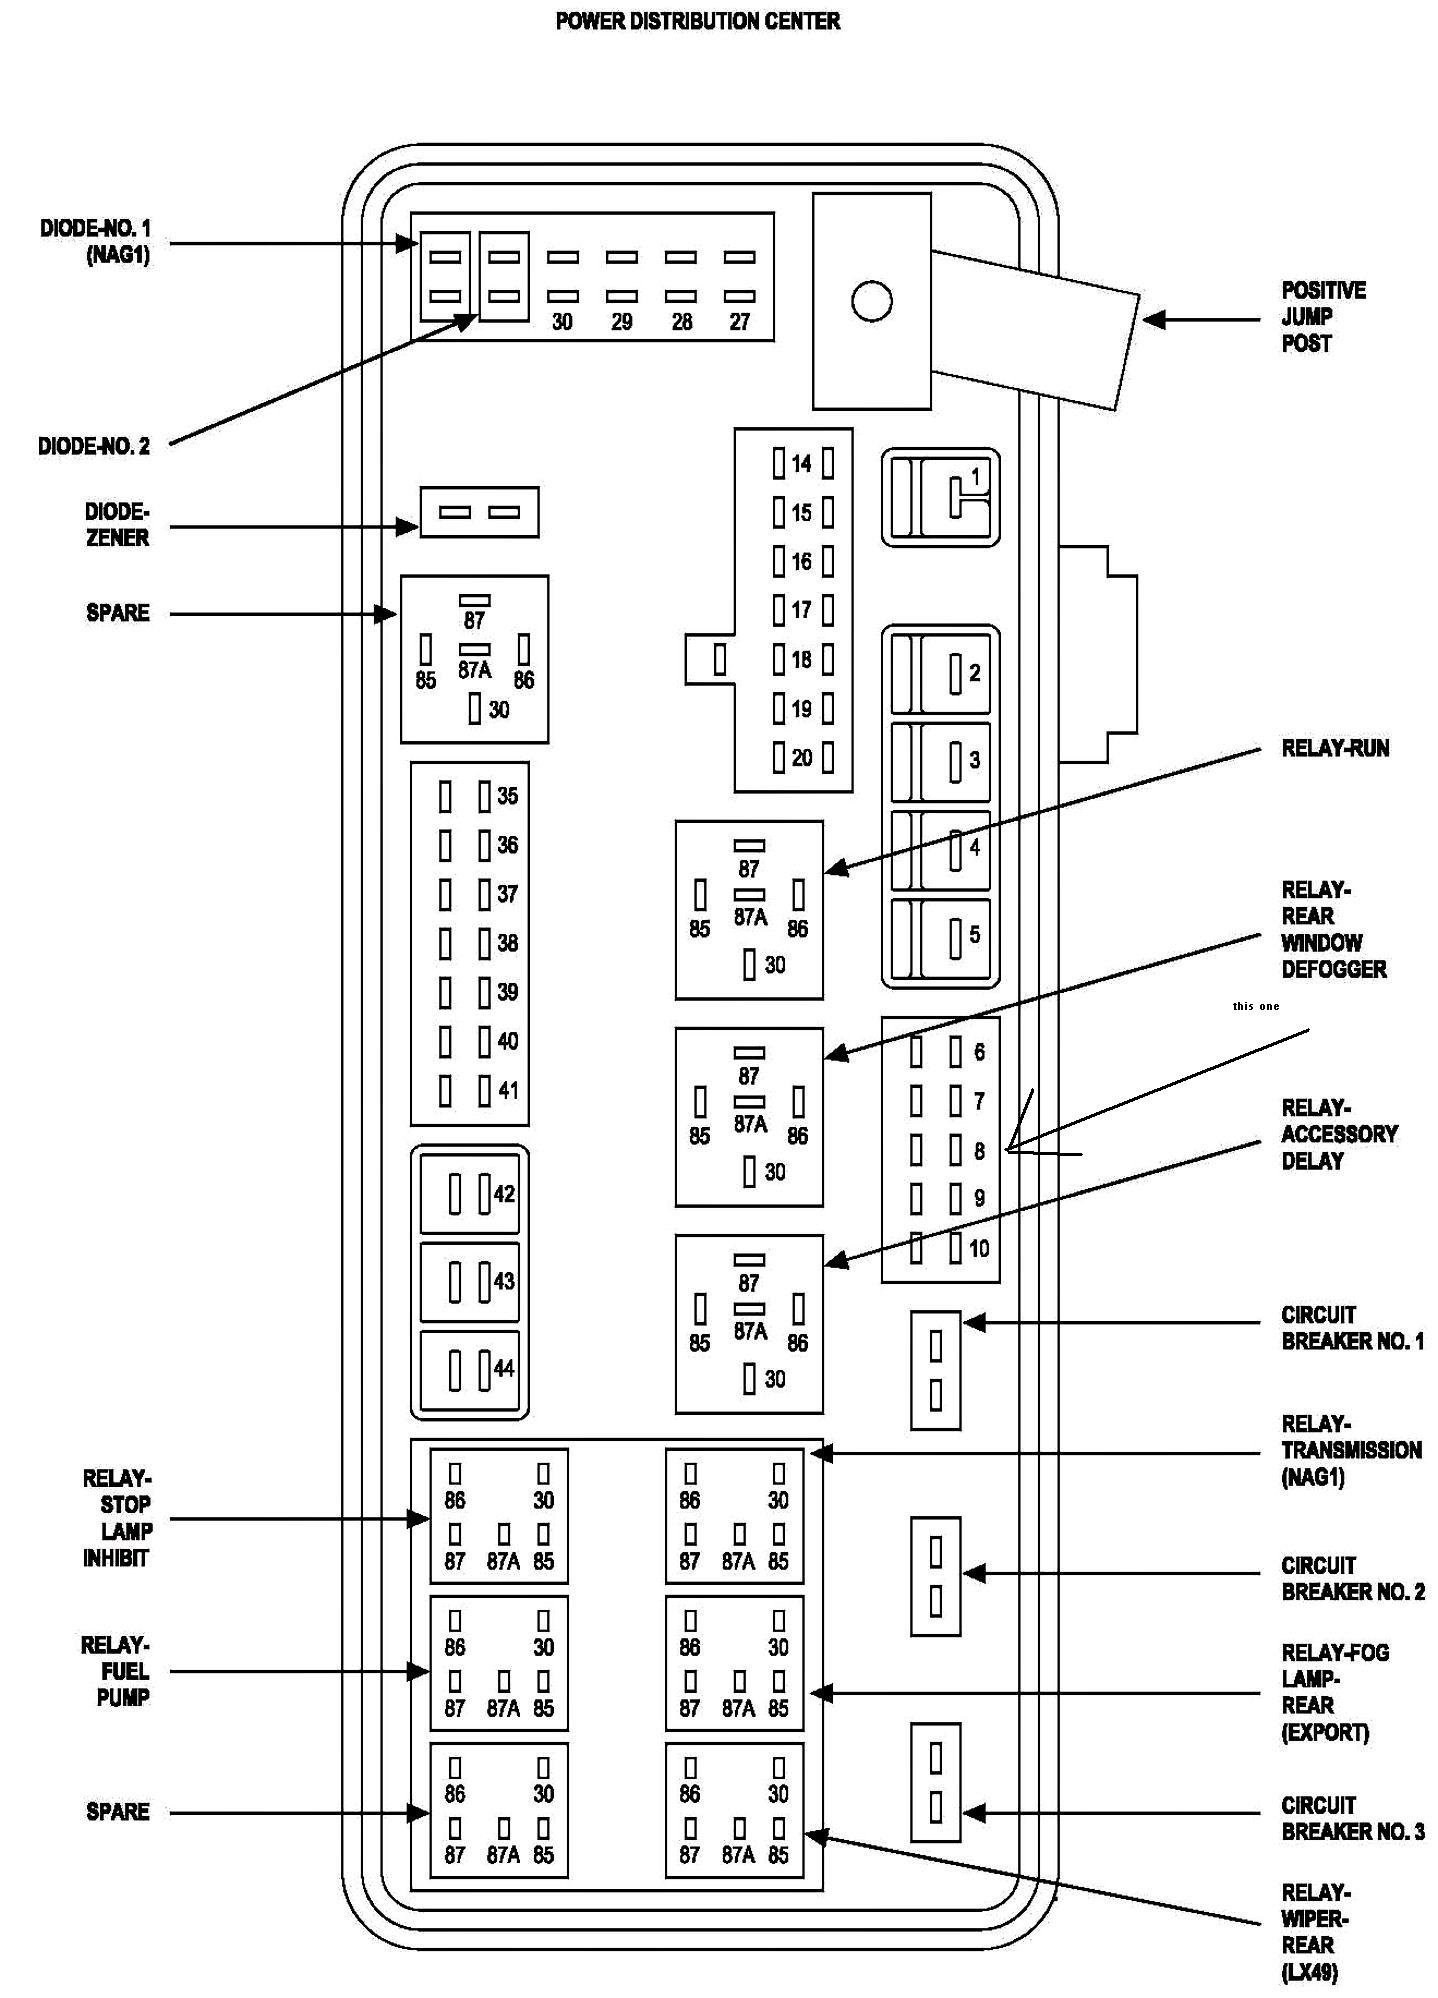 dodge ram 1500 parts diagram 2014 ram 1500 fuse box diagram wiring data of dodge ram 1500 parts diagram 2004 dodge ram fuse box problems wiring diagram data oreo